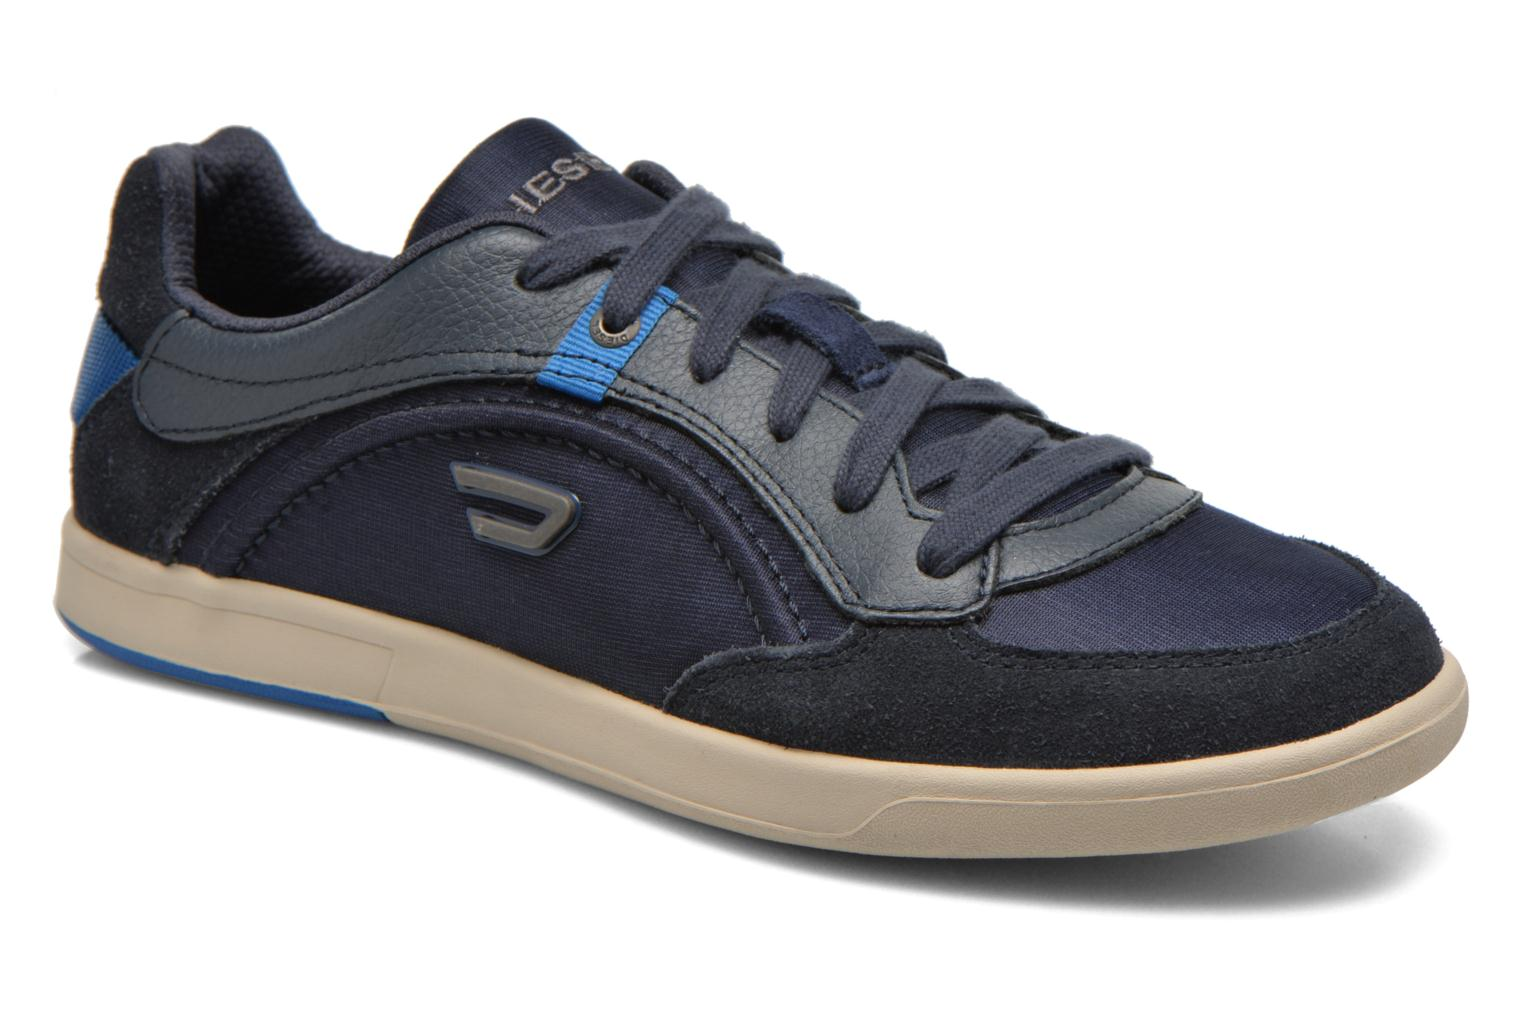 Starch Navy Blue